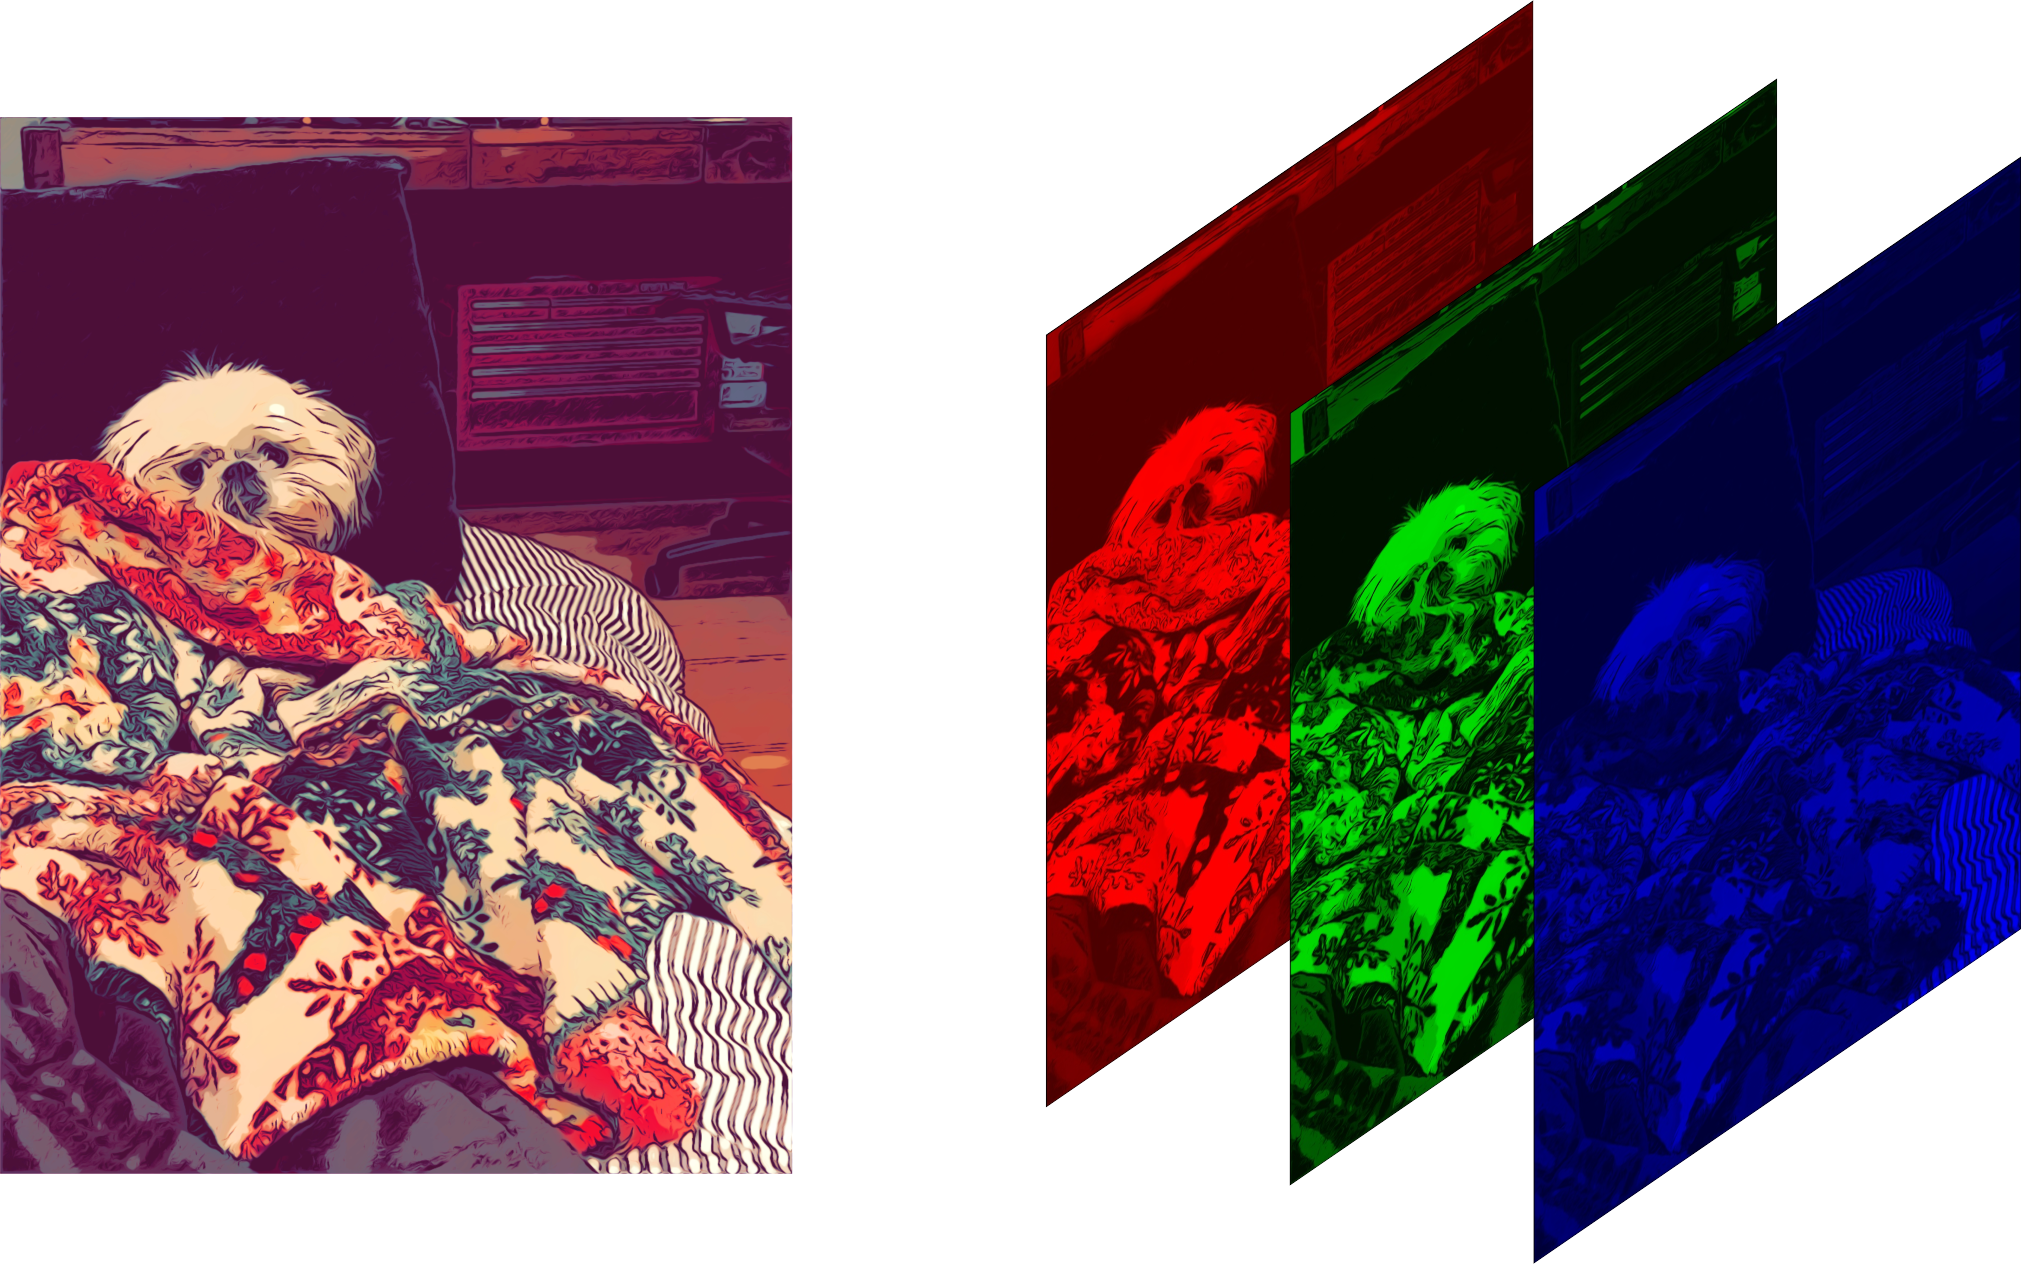 Color image with red, green, and blue channels